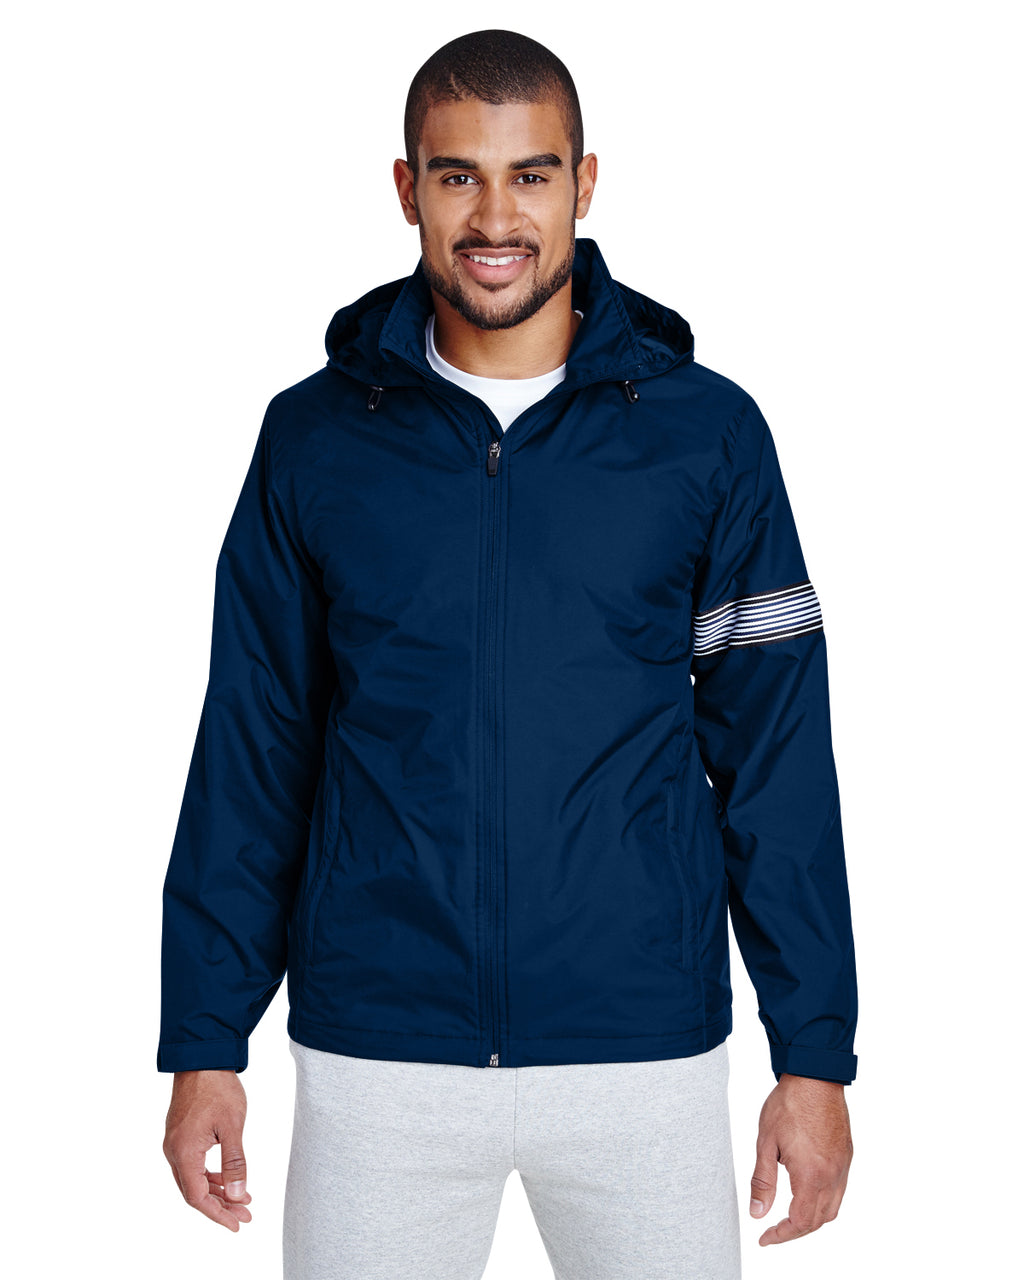 TT78 Team 365 Men's Boost All-Season Jacket with Fleece Lining